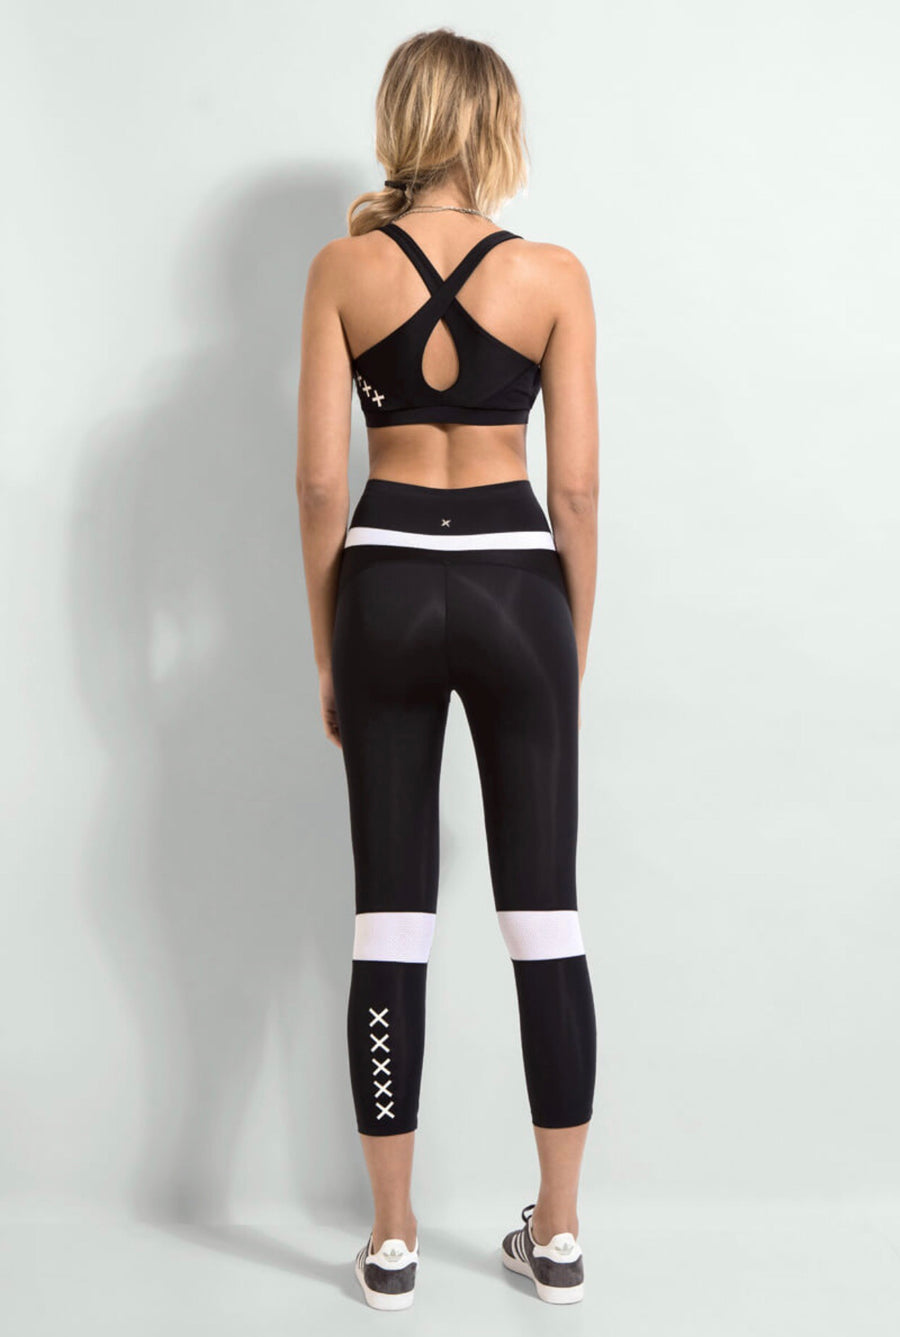 Centre Court 7/8th Compression Legging